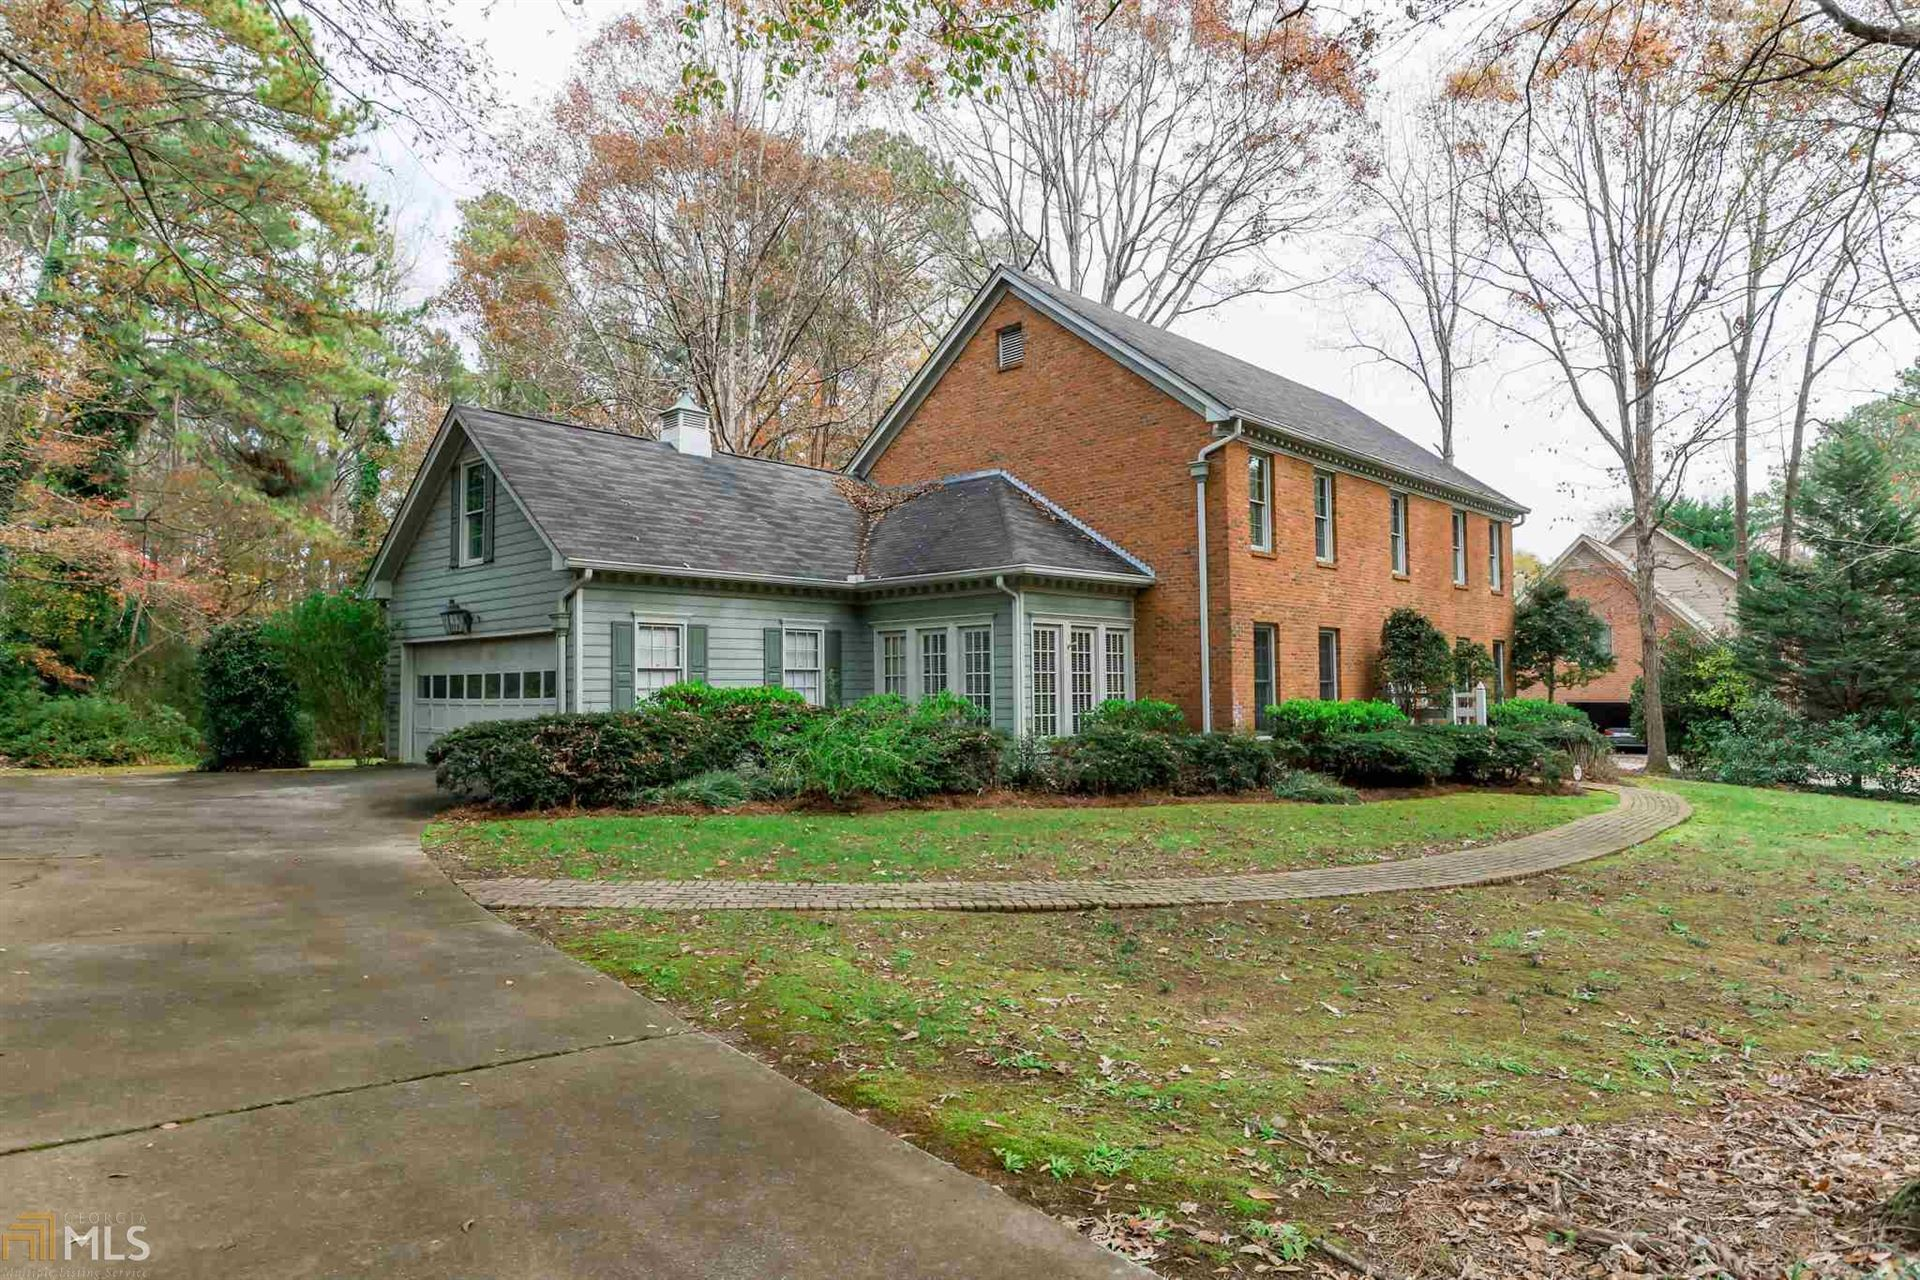 6121 Millstone Run, Stone Mountain, GA 30087 - #: 8896518